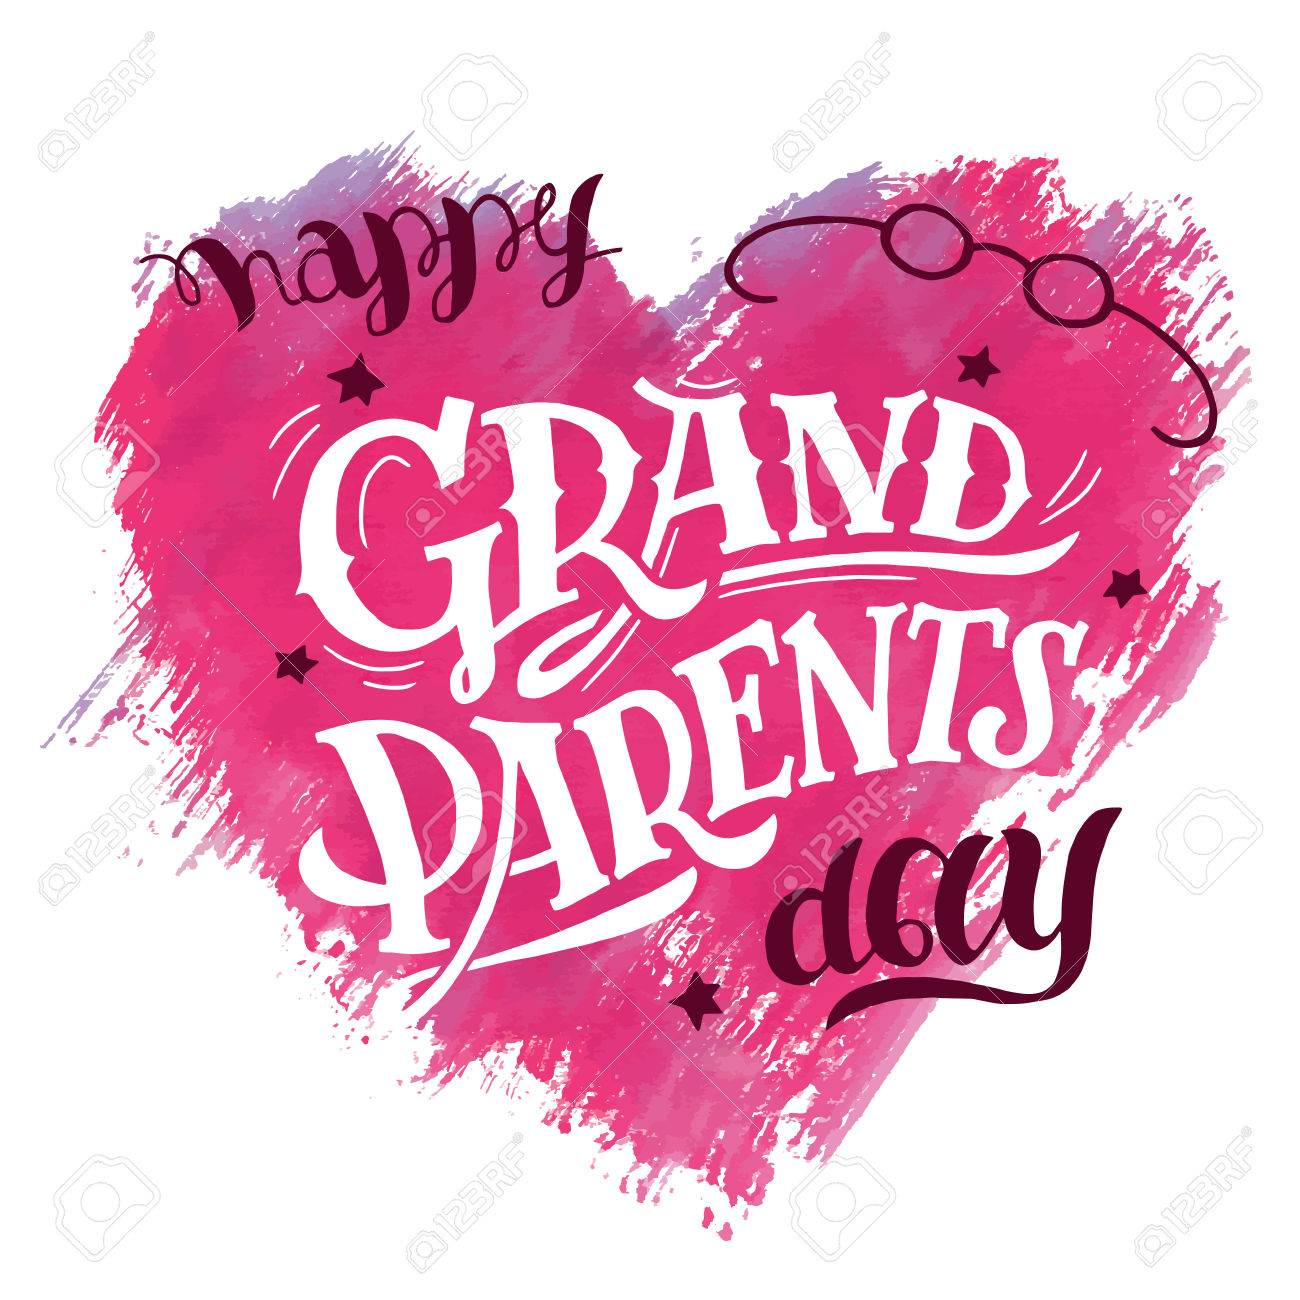 happy grandparents day gift card for grandpa and grandma holiday